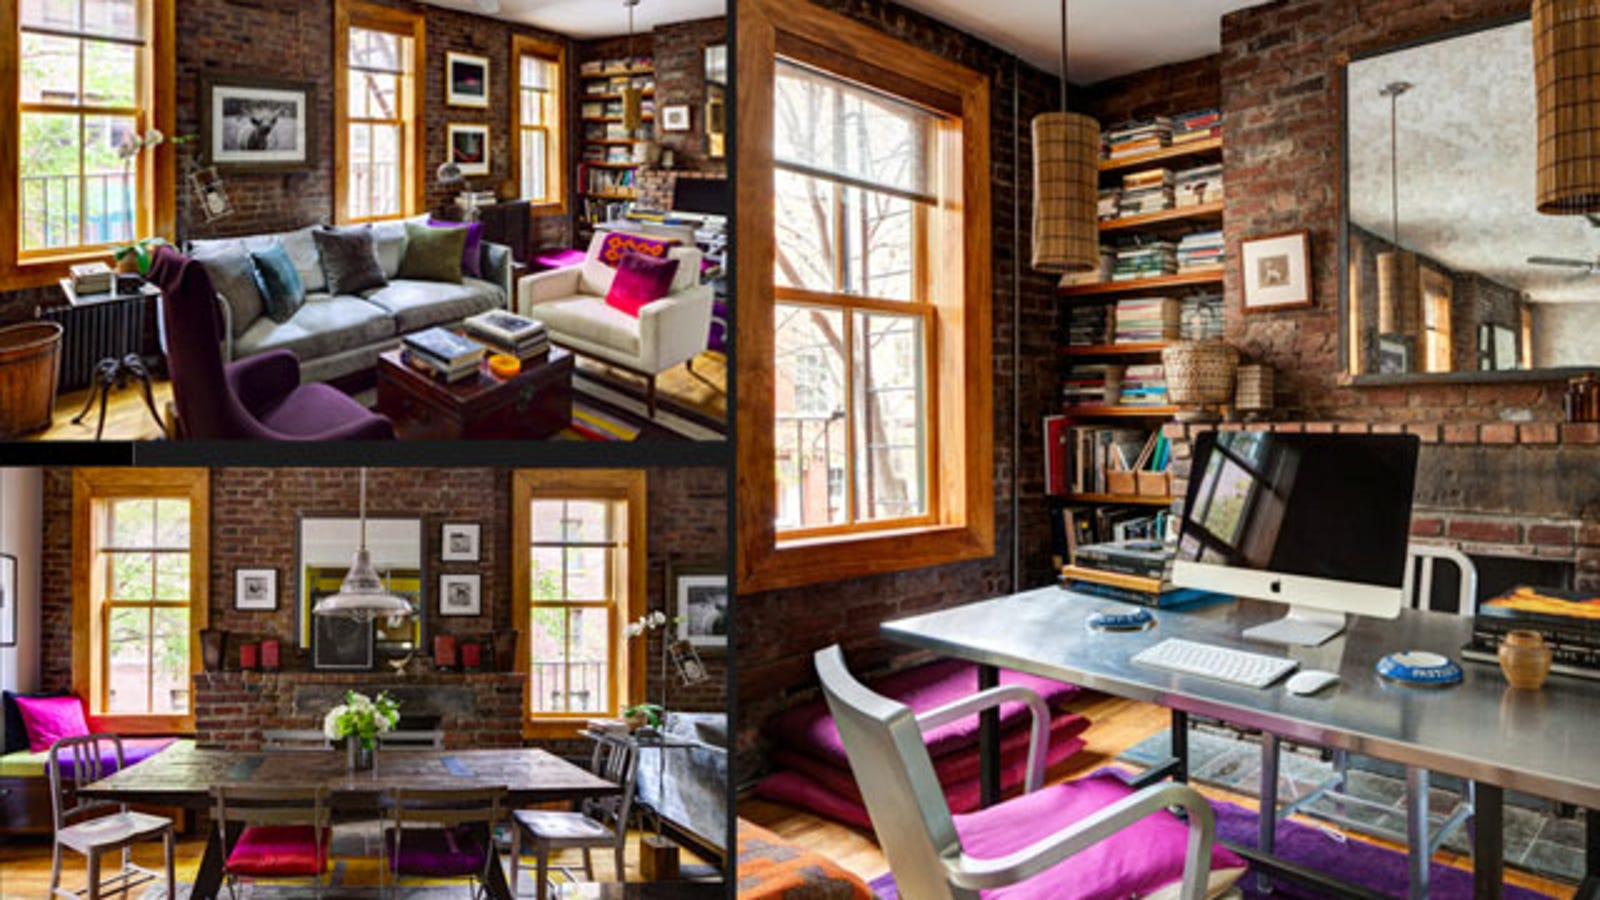 The Rustic, Richly Textured Workspace